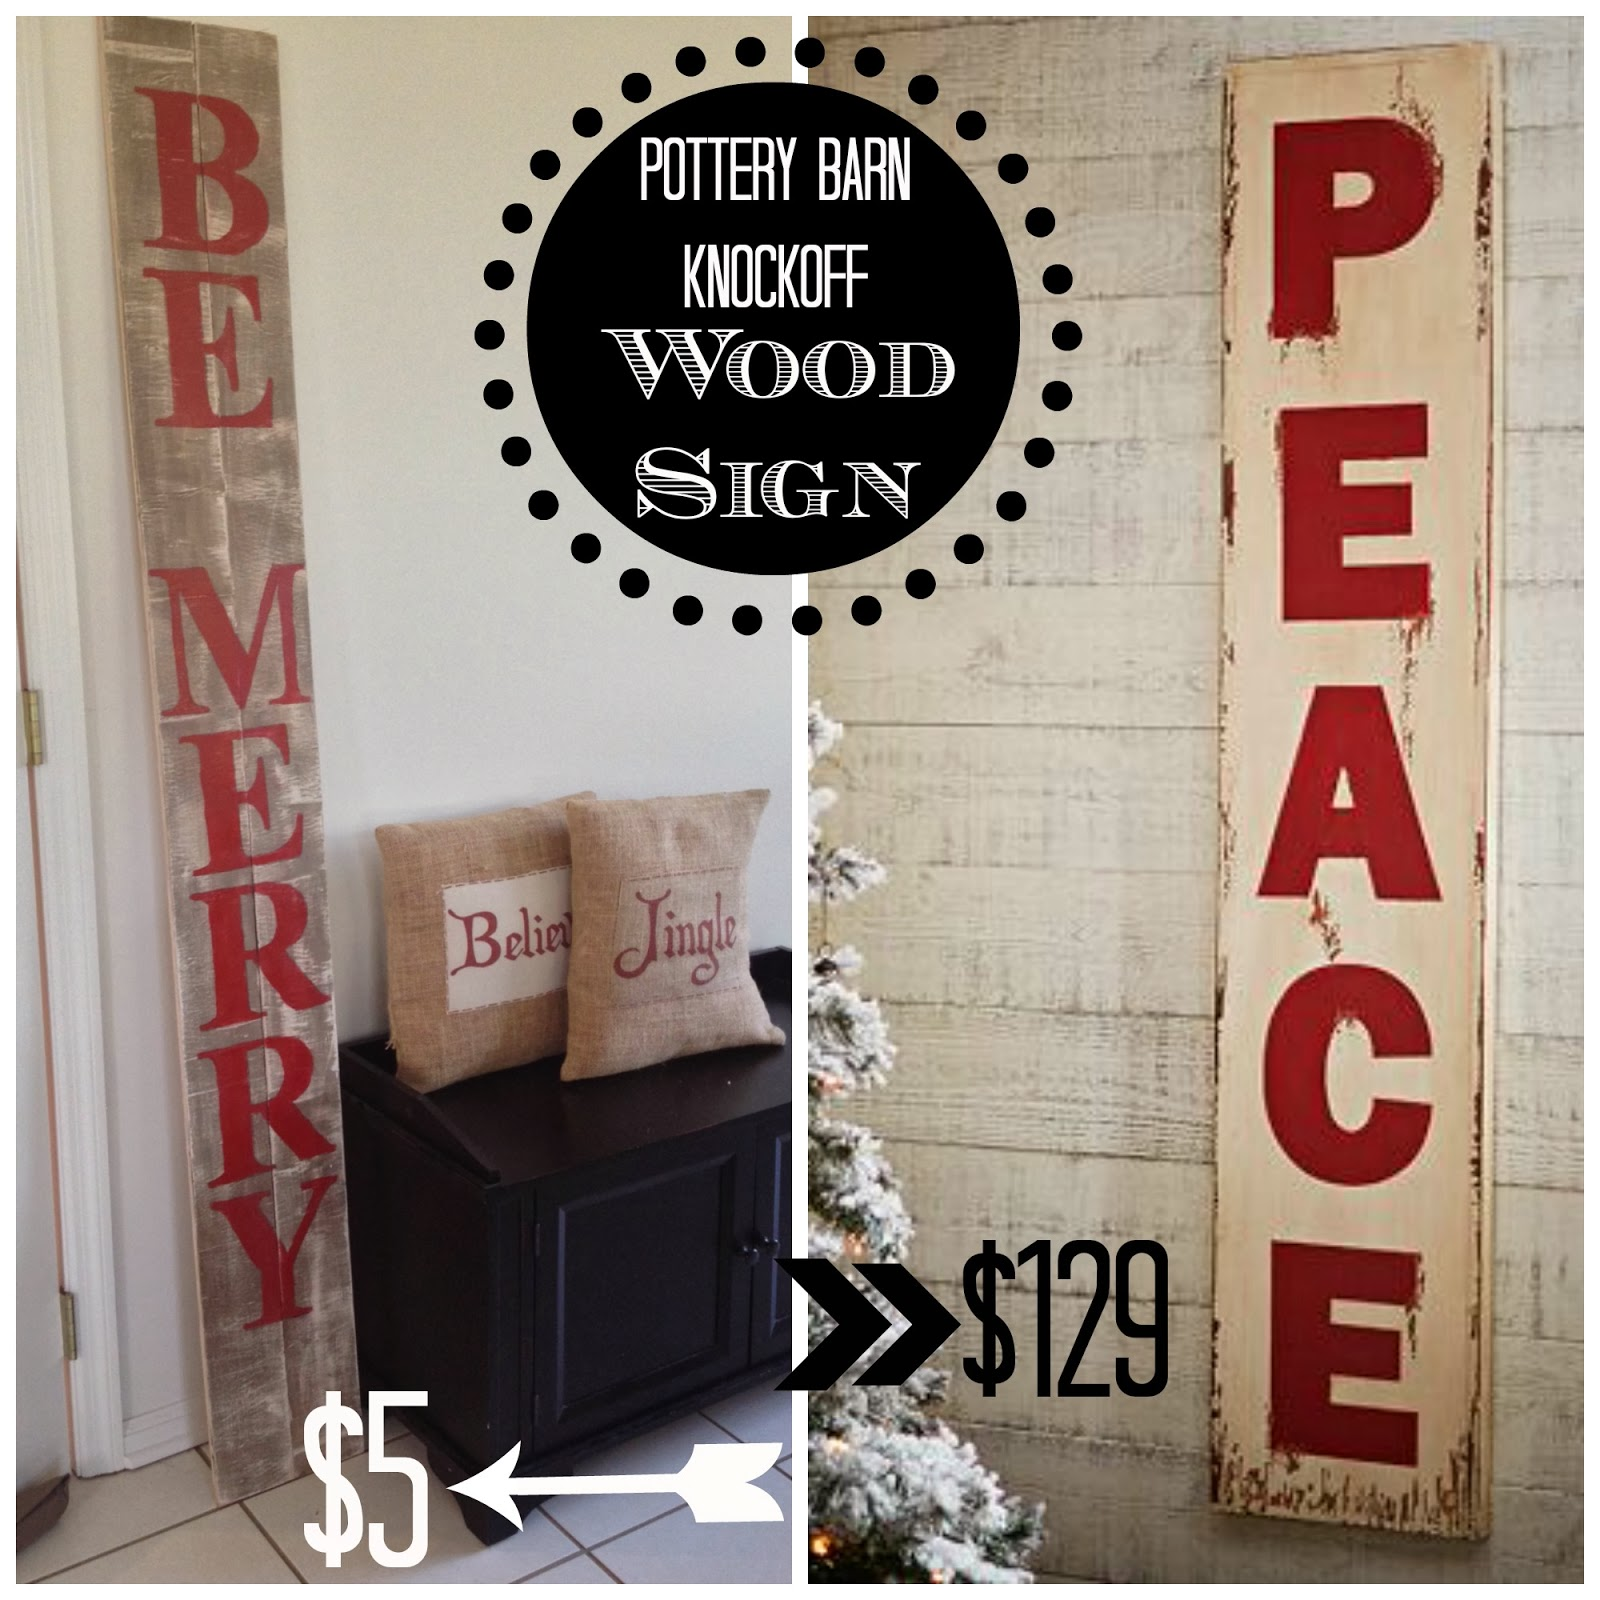 pottery barn knockoff oversized wood sign silhouette tutorial silhouette studio - Christmas Wooden Signs